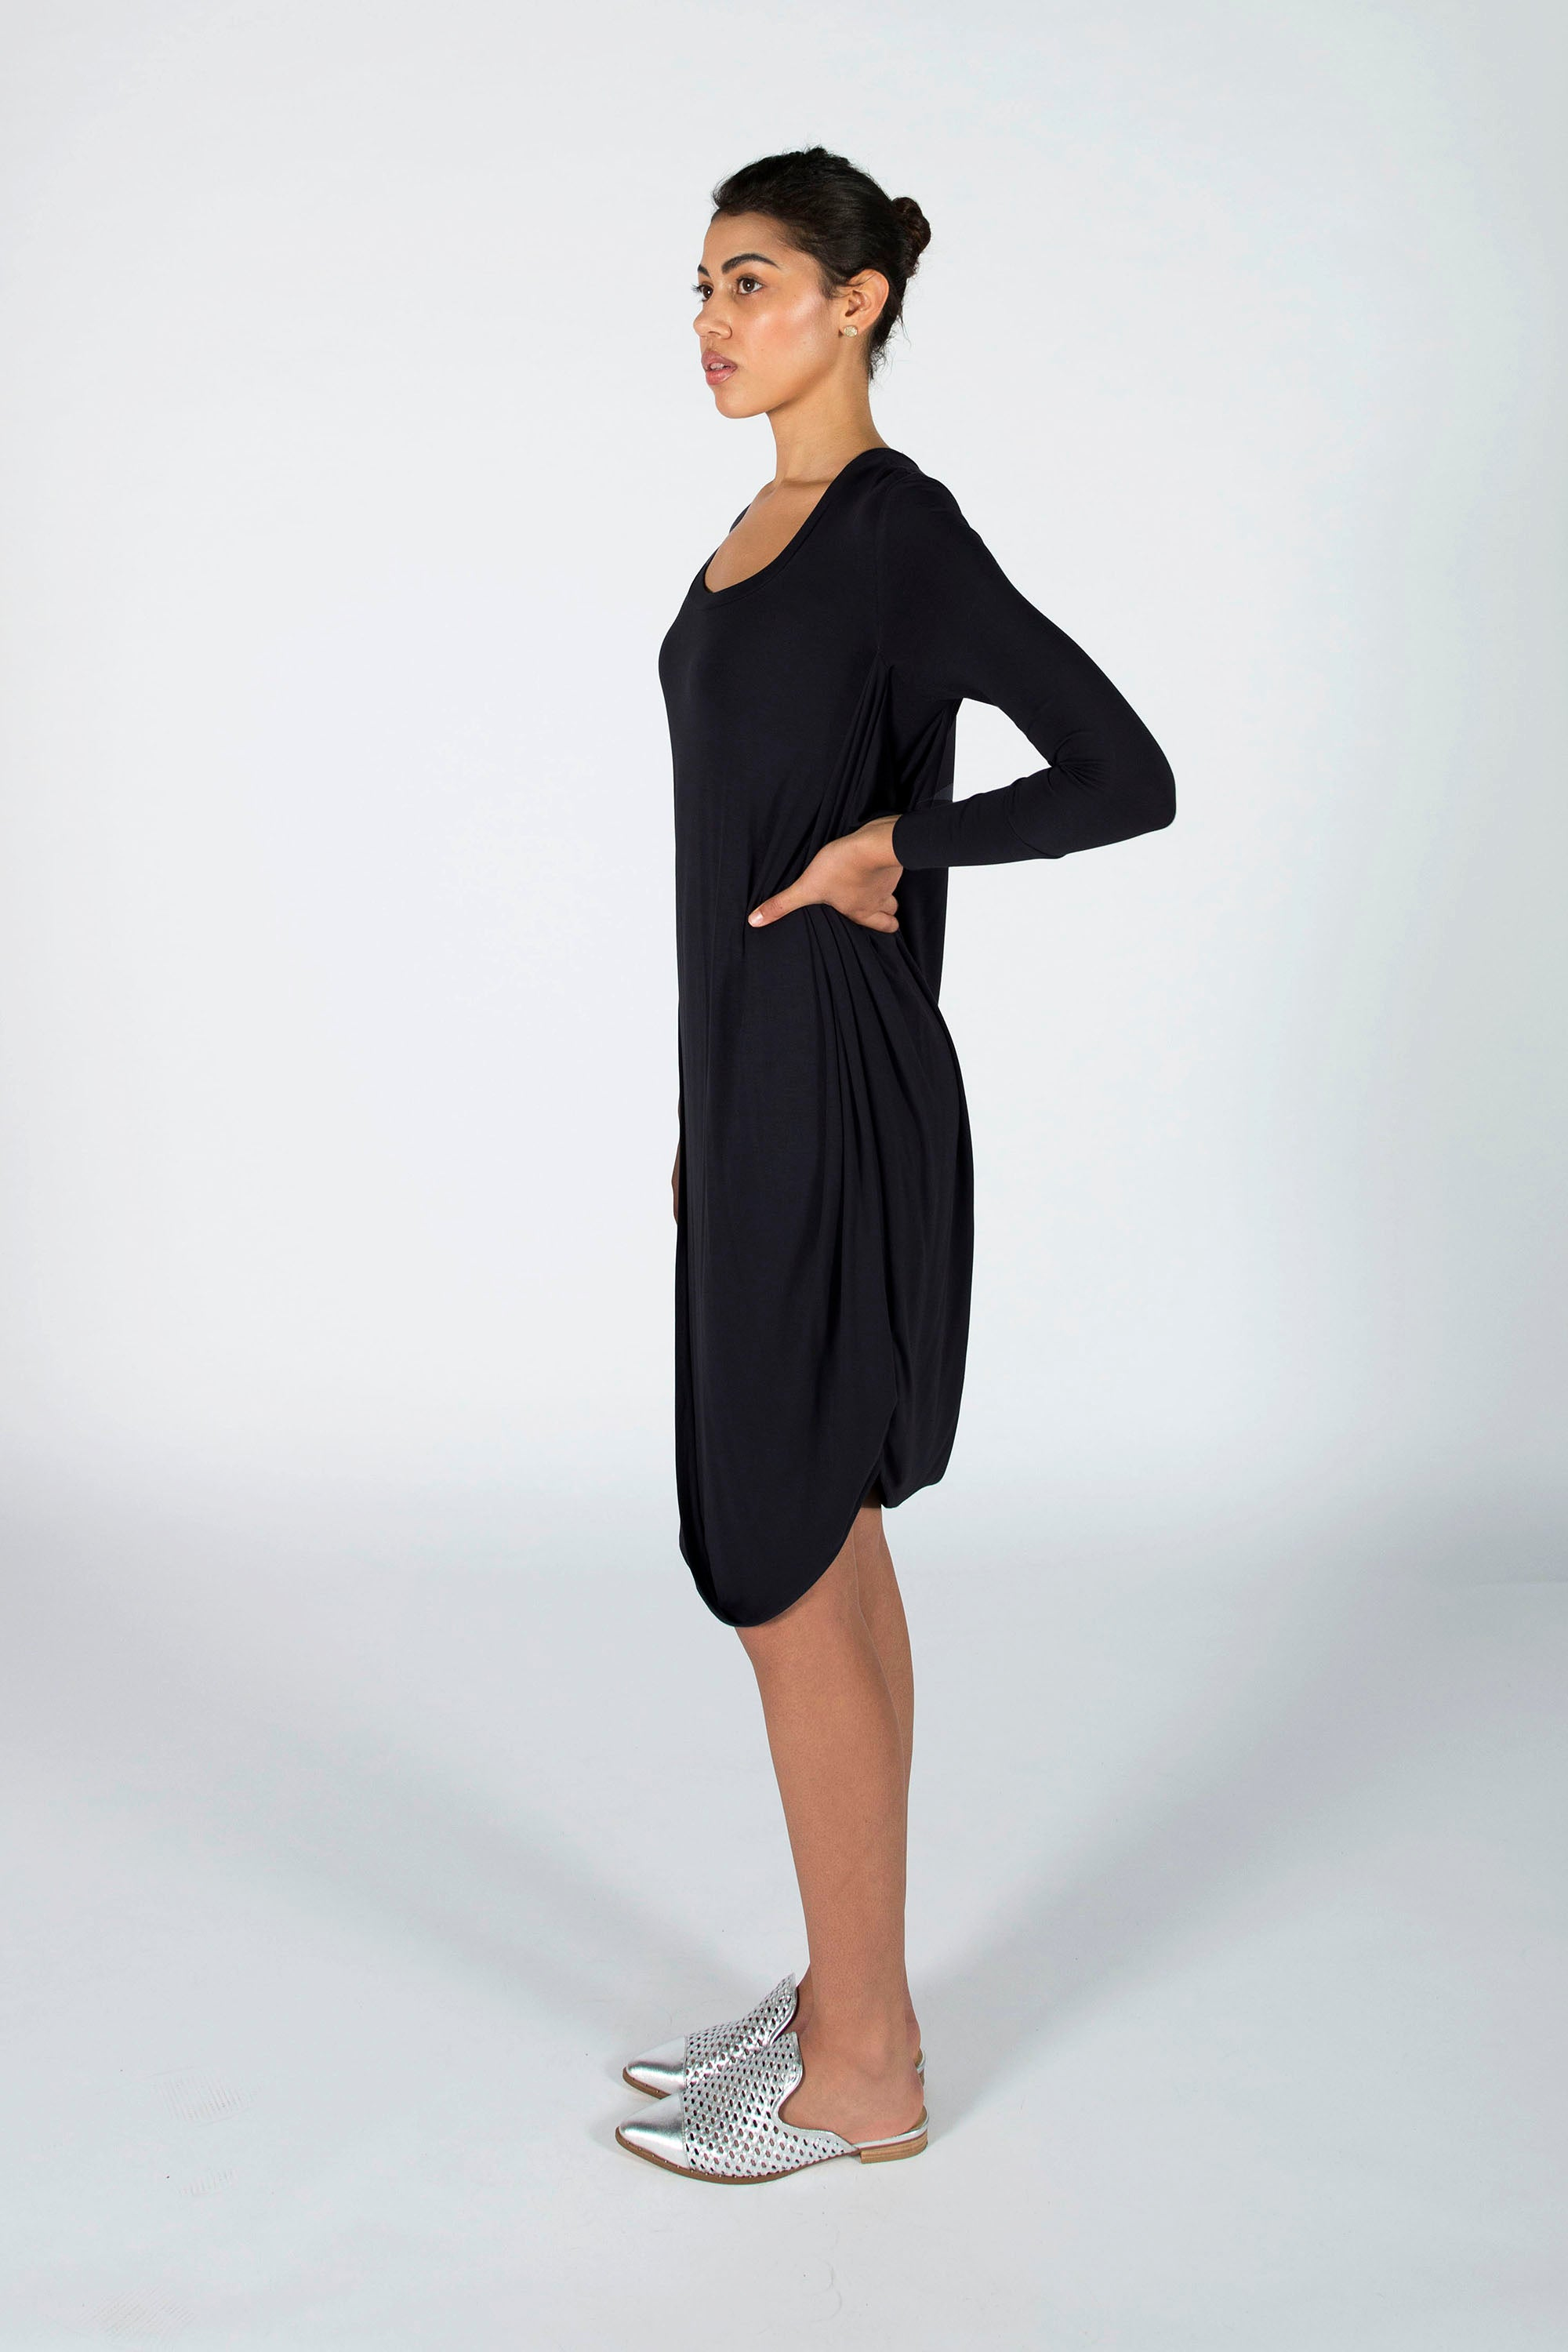 : the black CHRISTINE dress